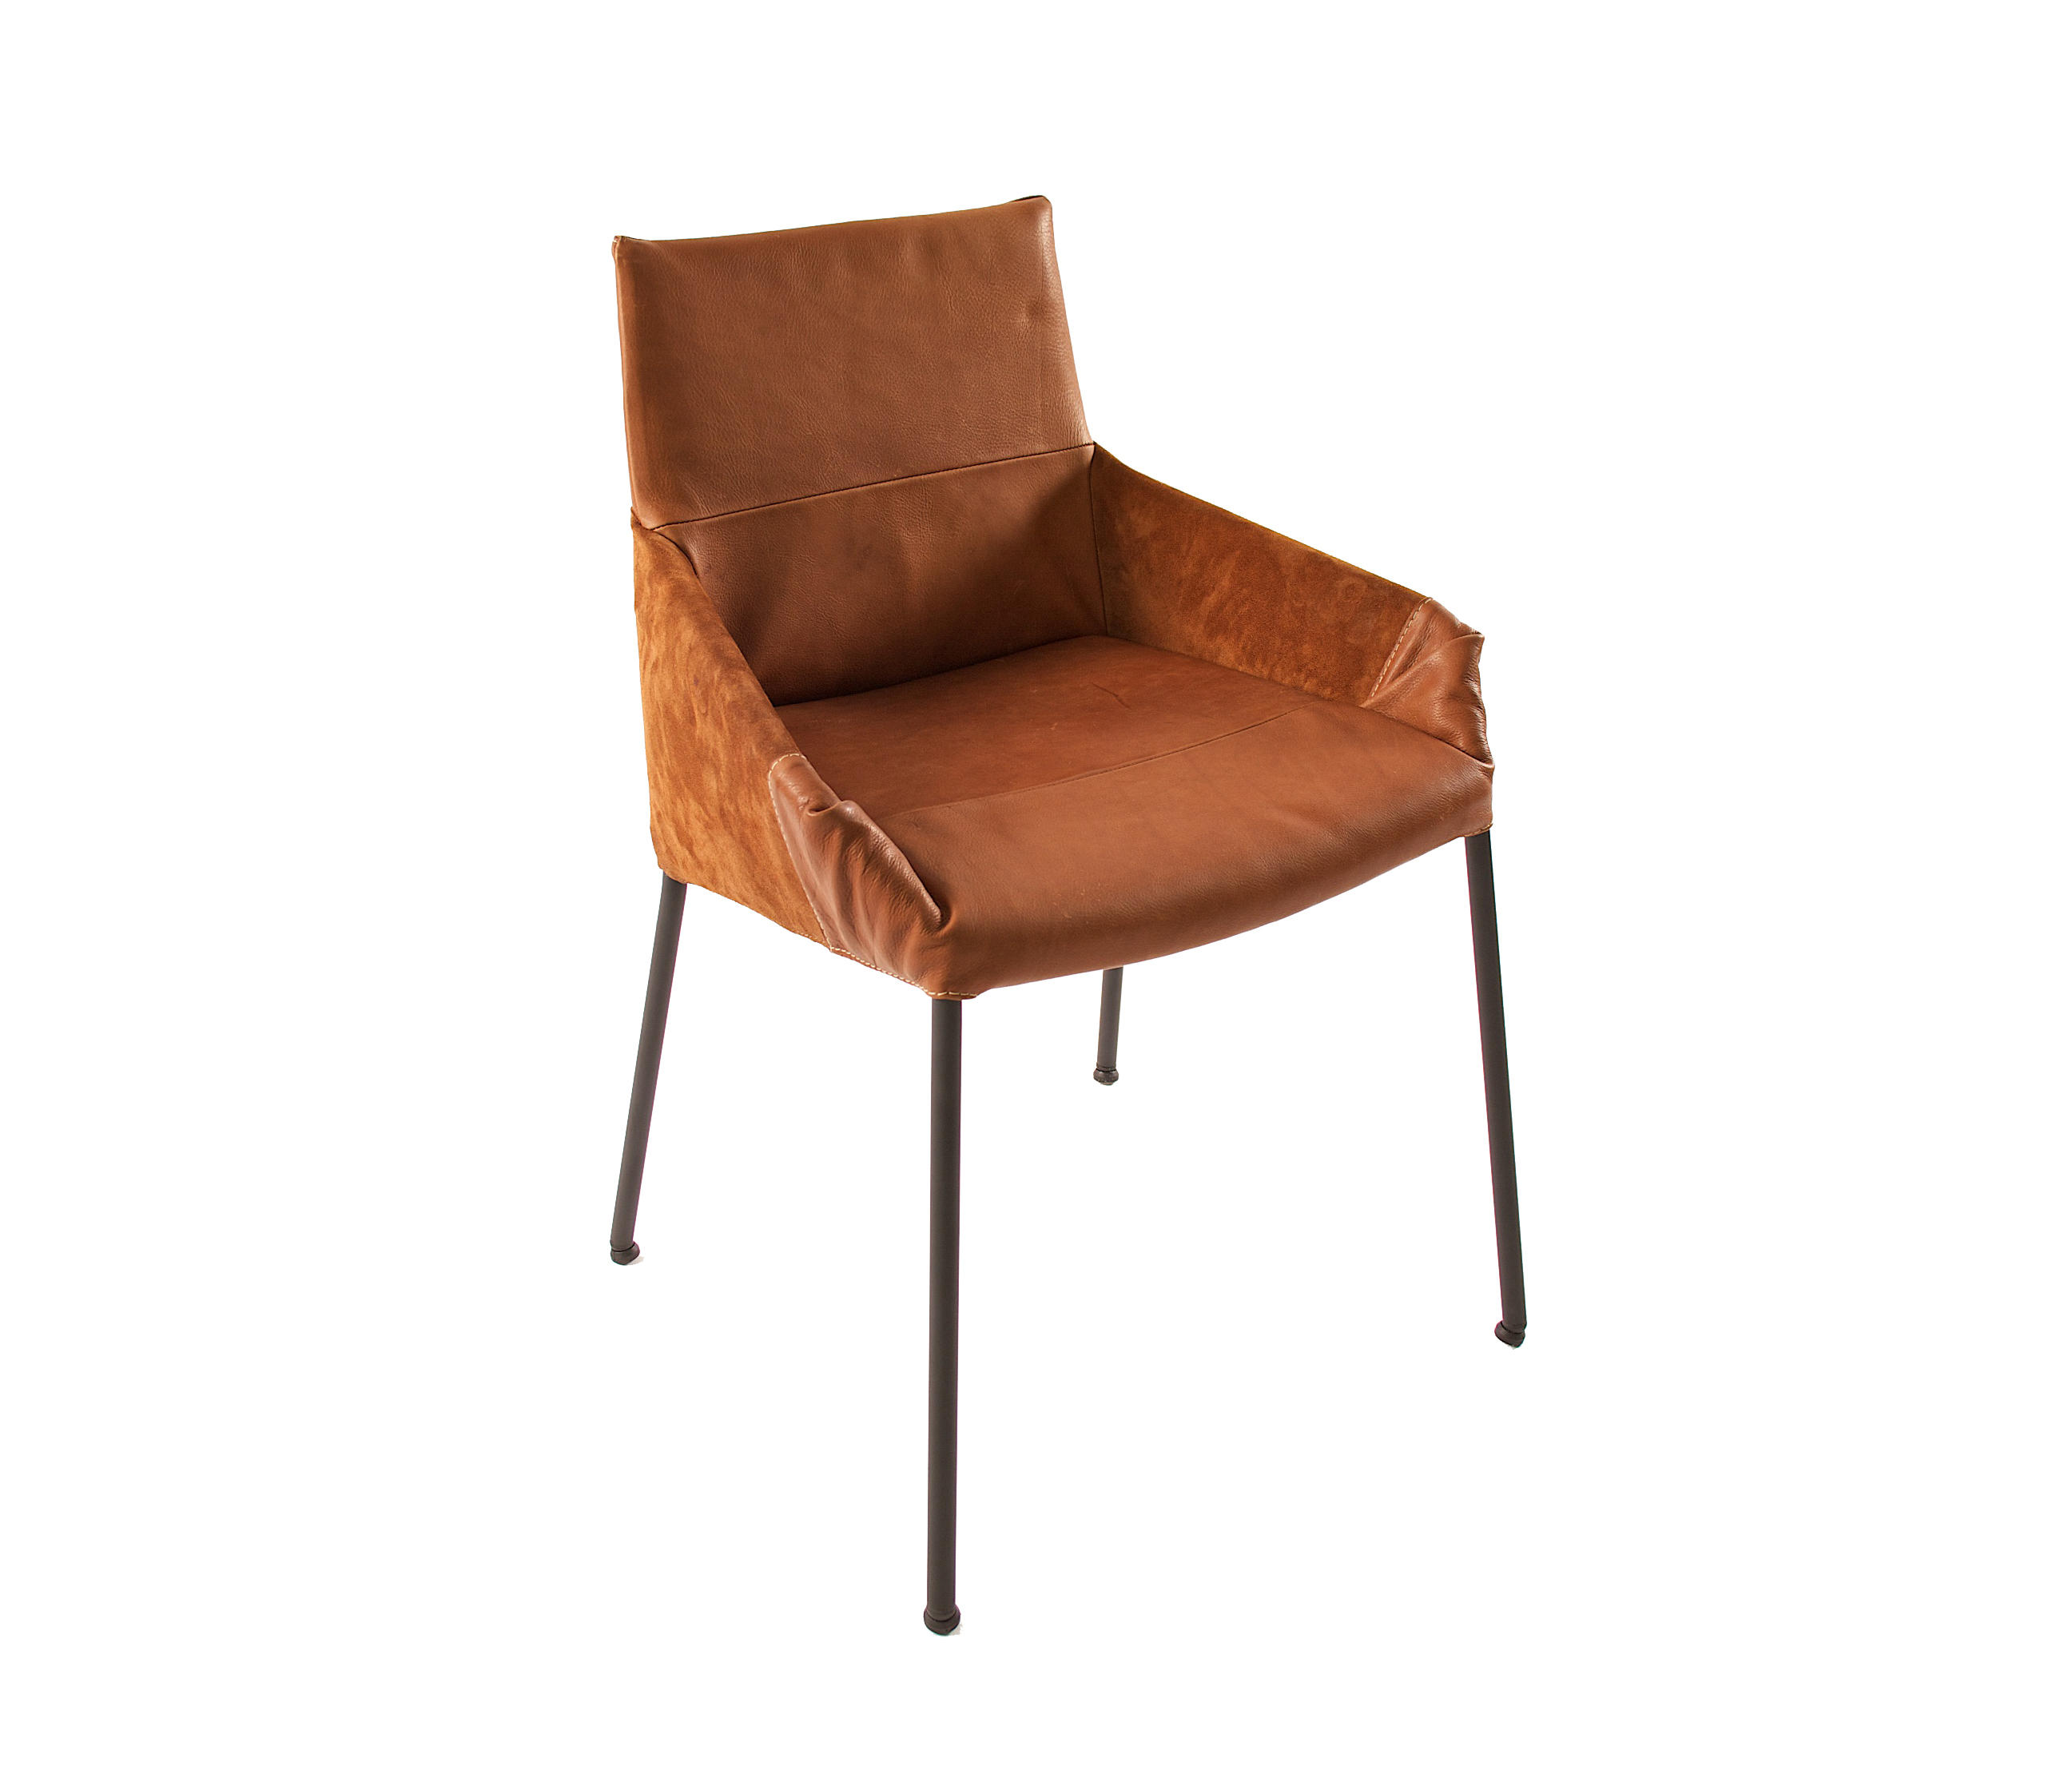 ... Inside Out Chair By Label | Visitors Chairs / Side Chairs ...